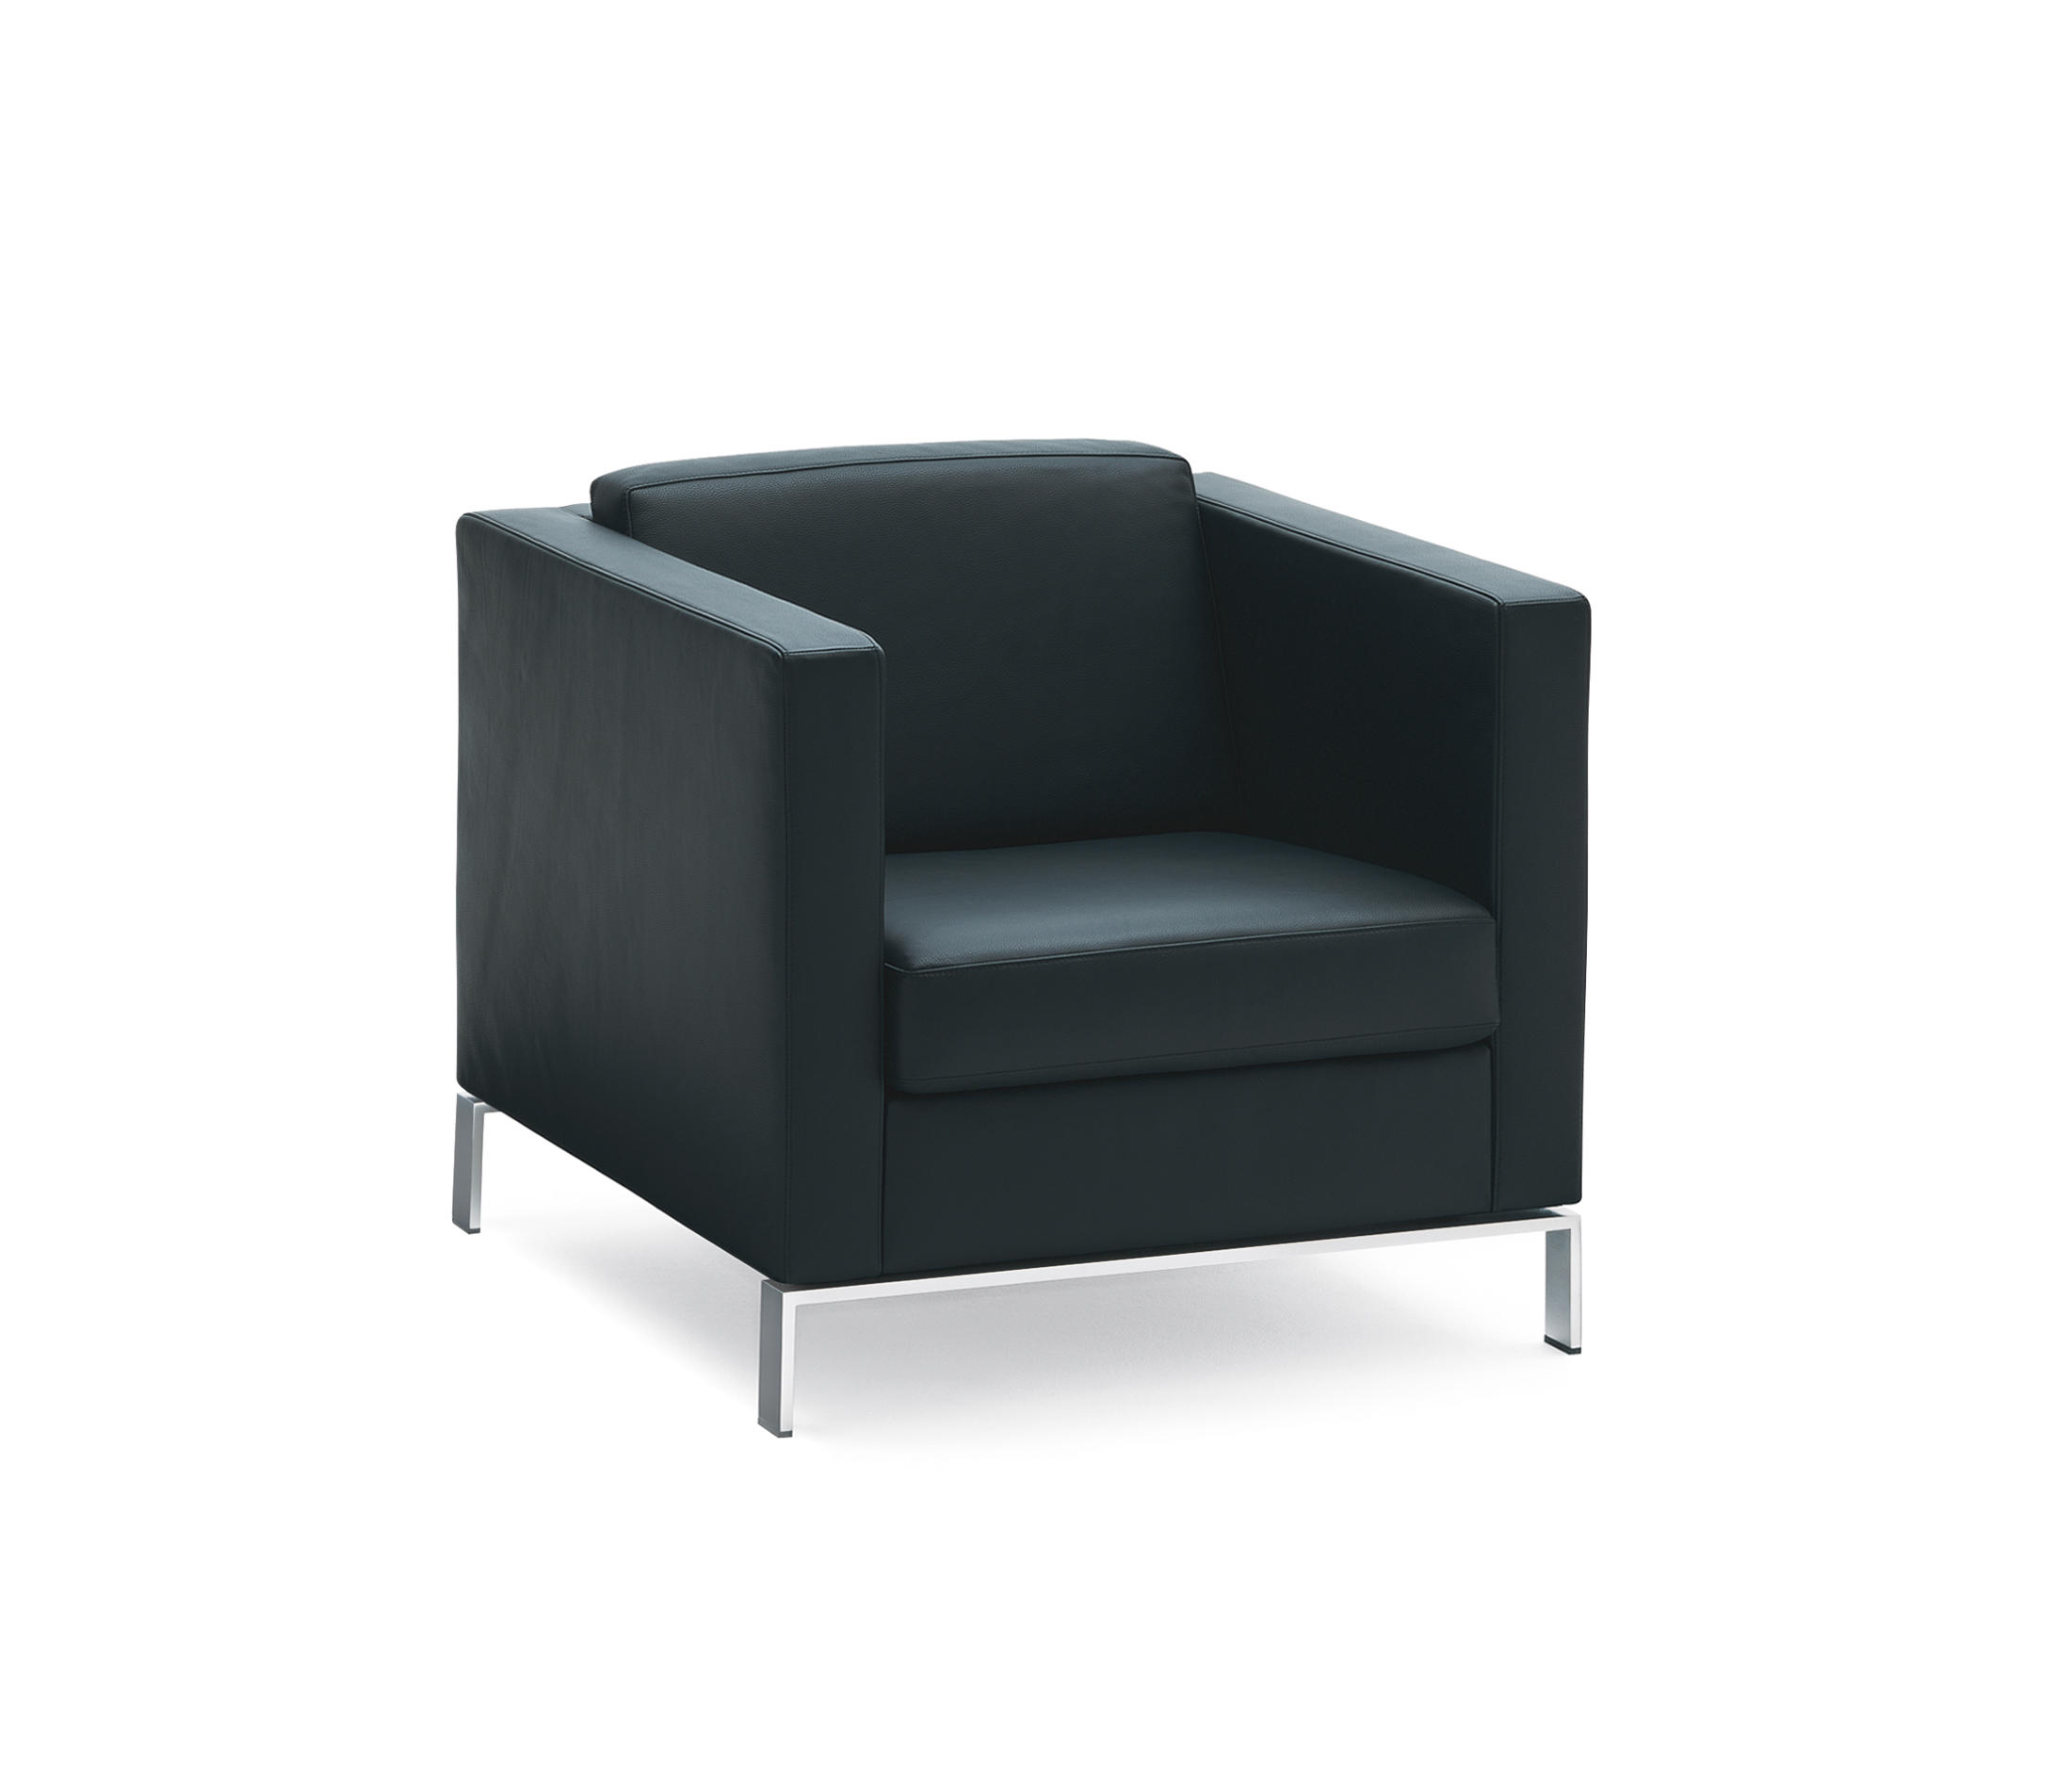 Foster 500 sessel loungesessel von walter knoll architonic for Sessel walter knoll